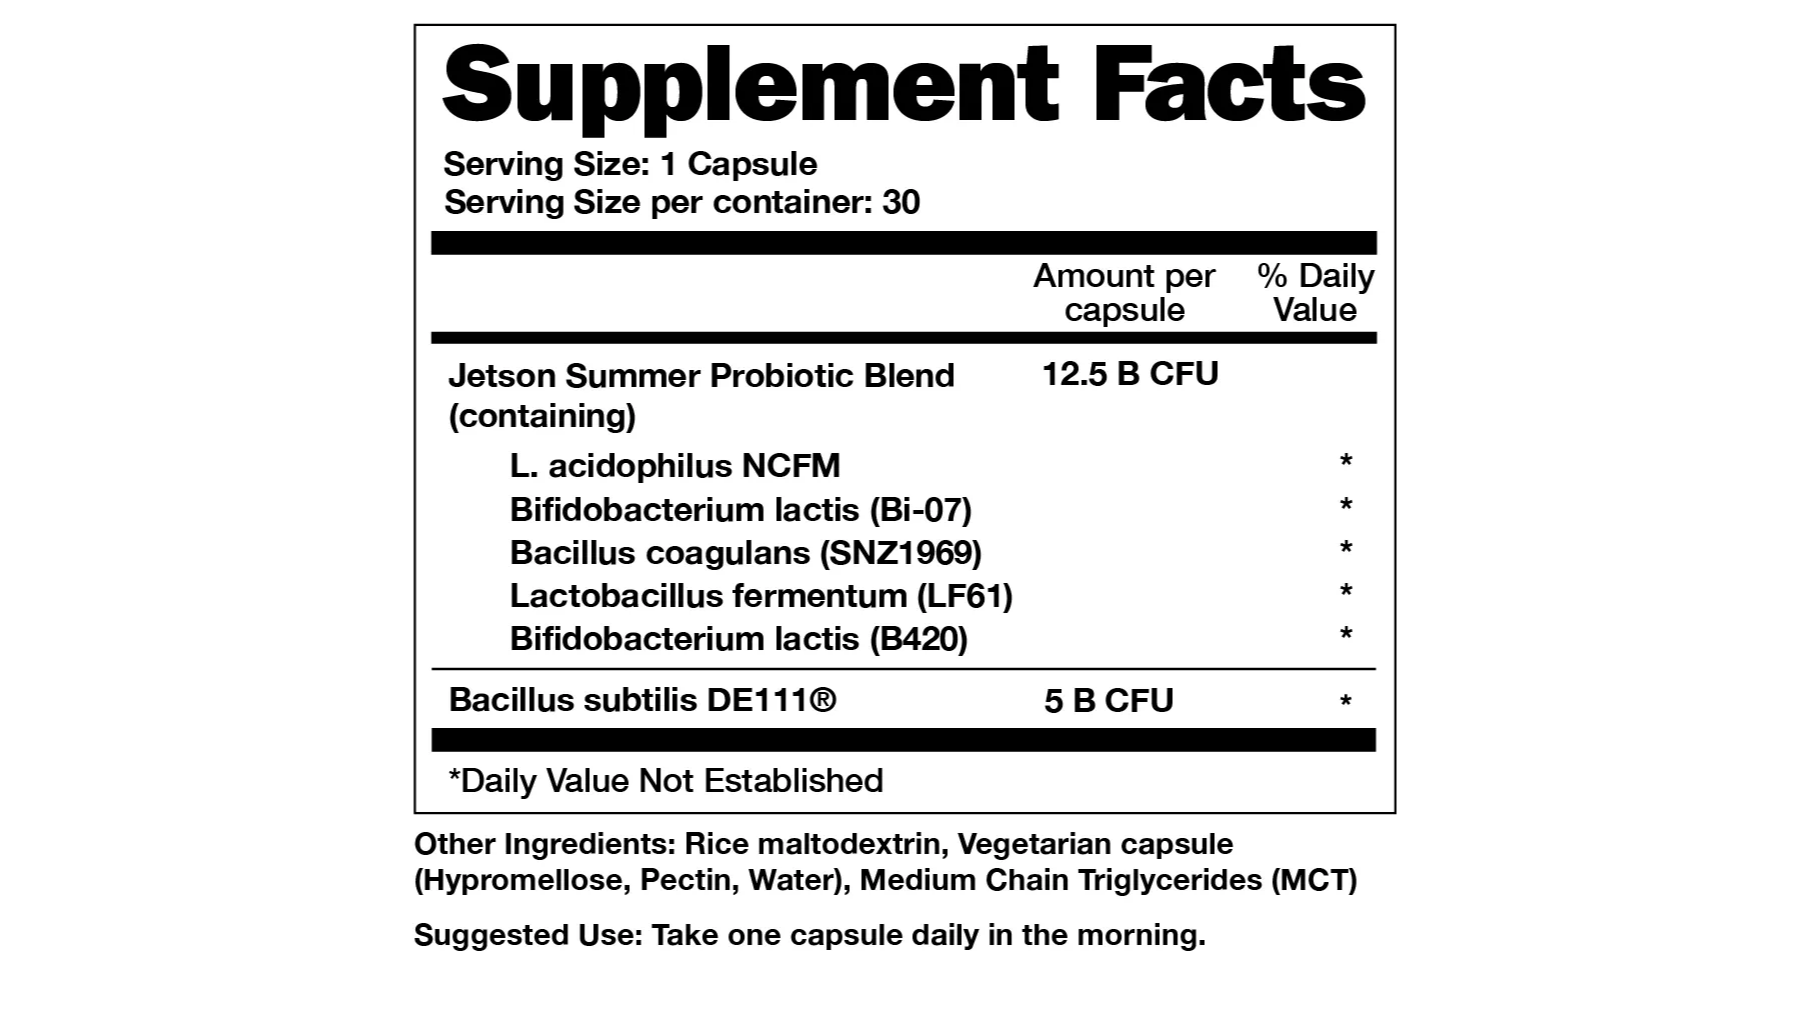 Supplements Facts of Fit Probiotic